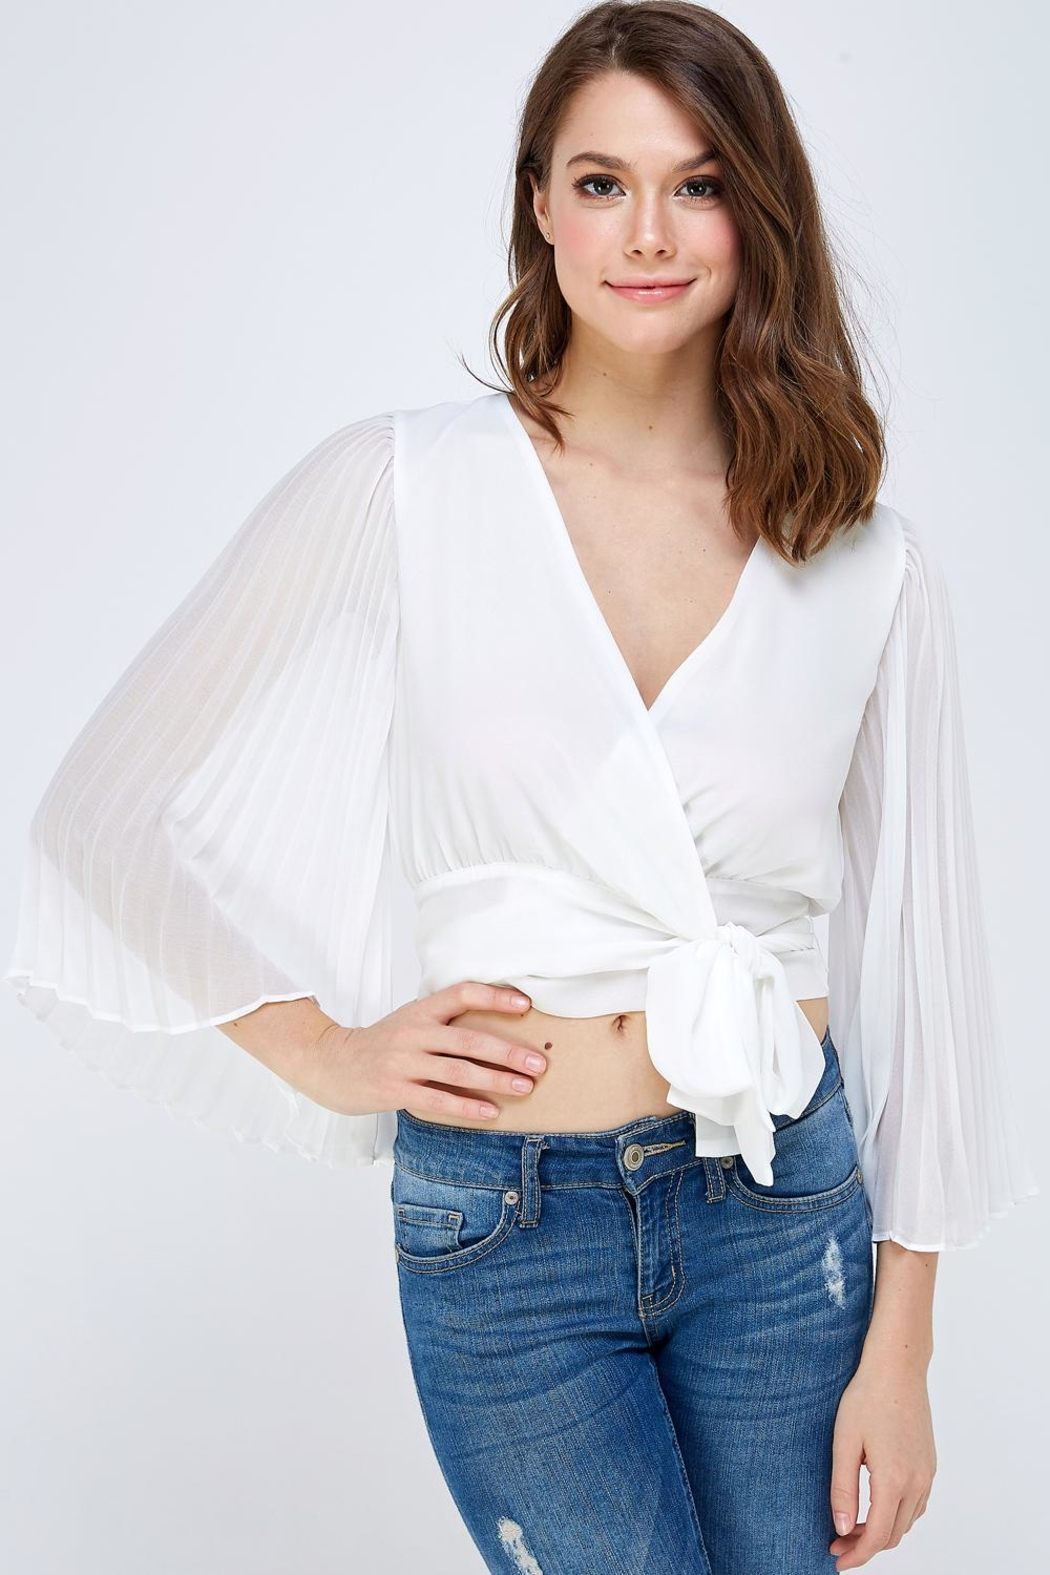 luxxel White Pleated Blouse - Main Image